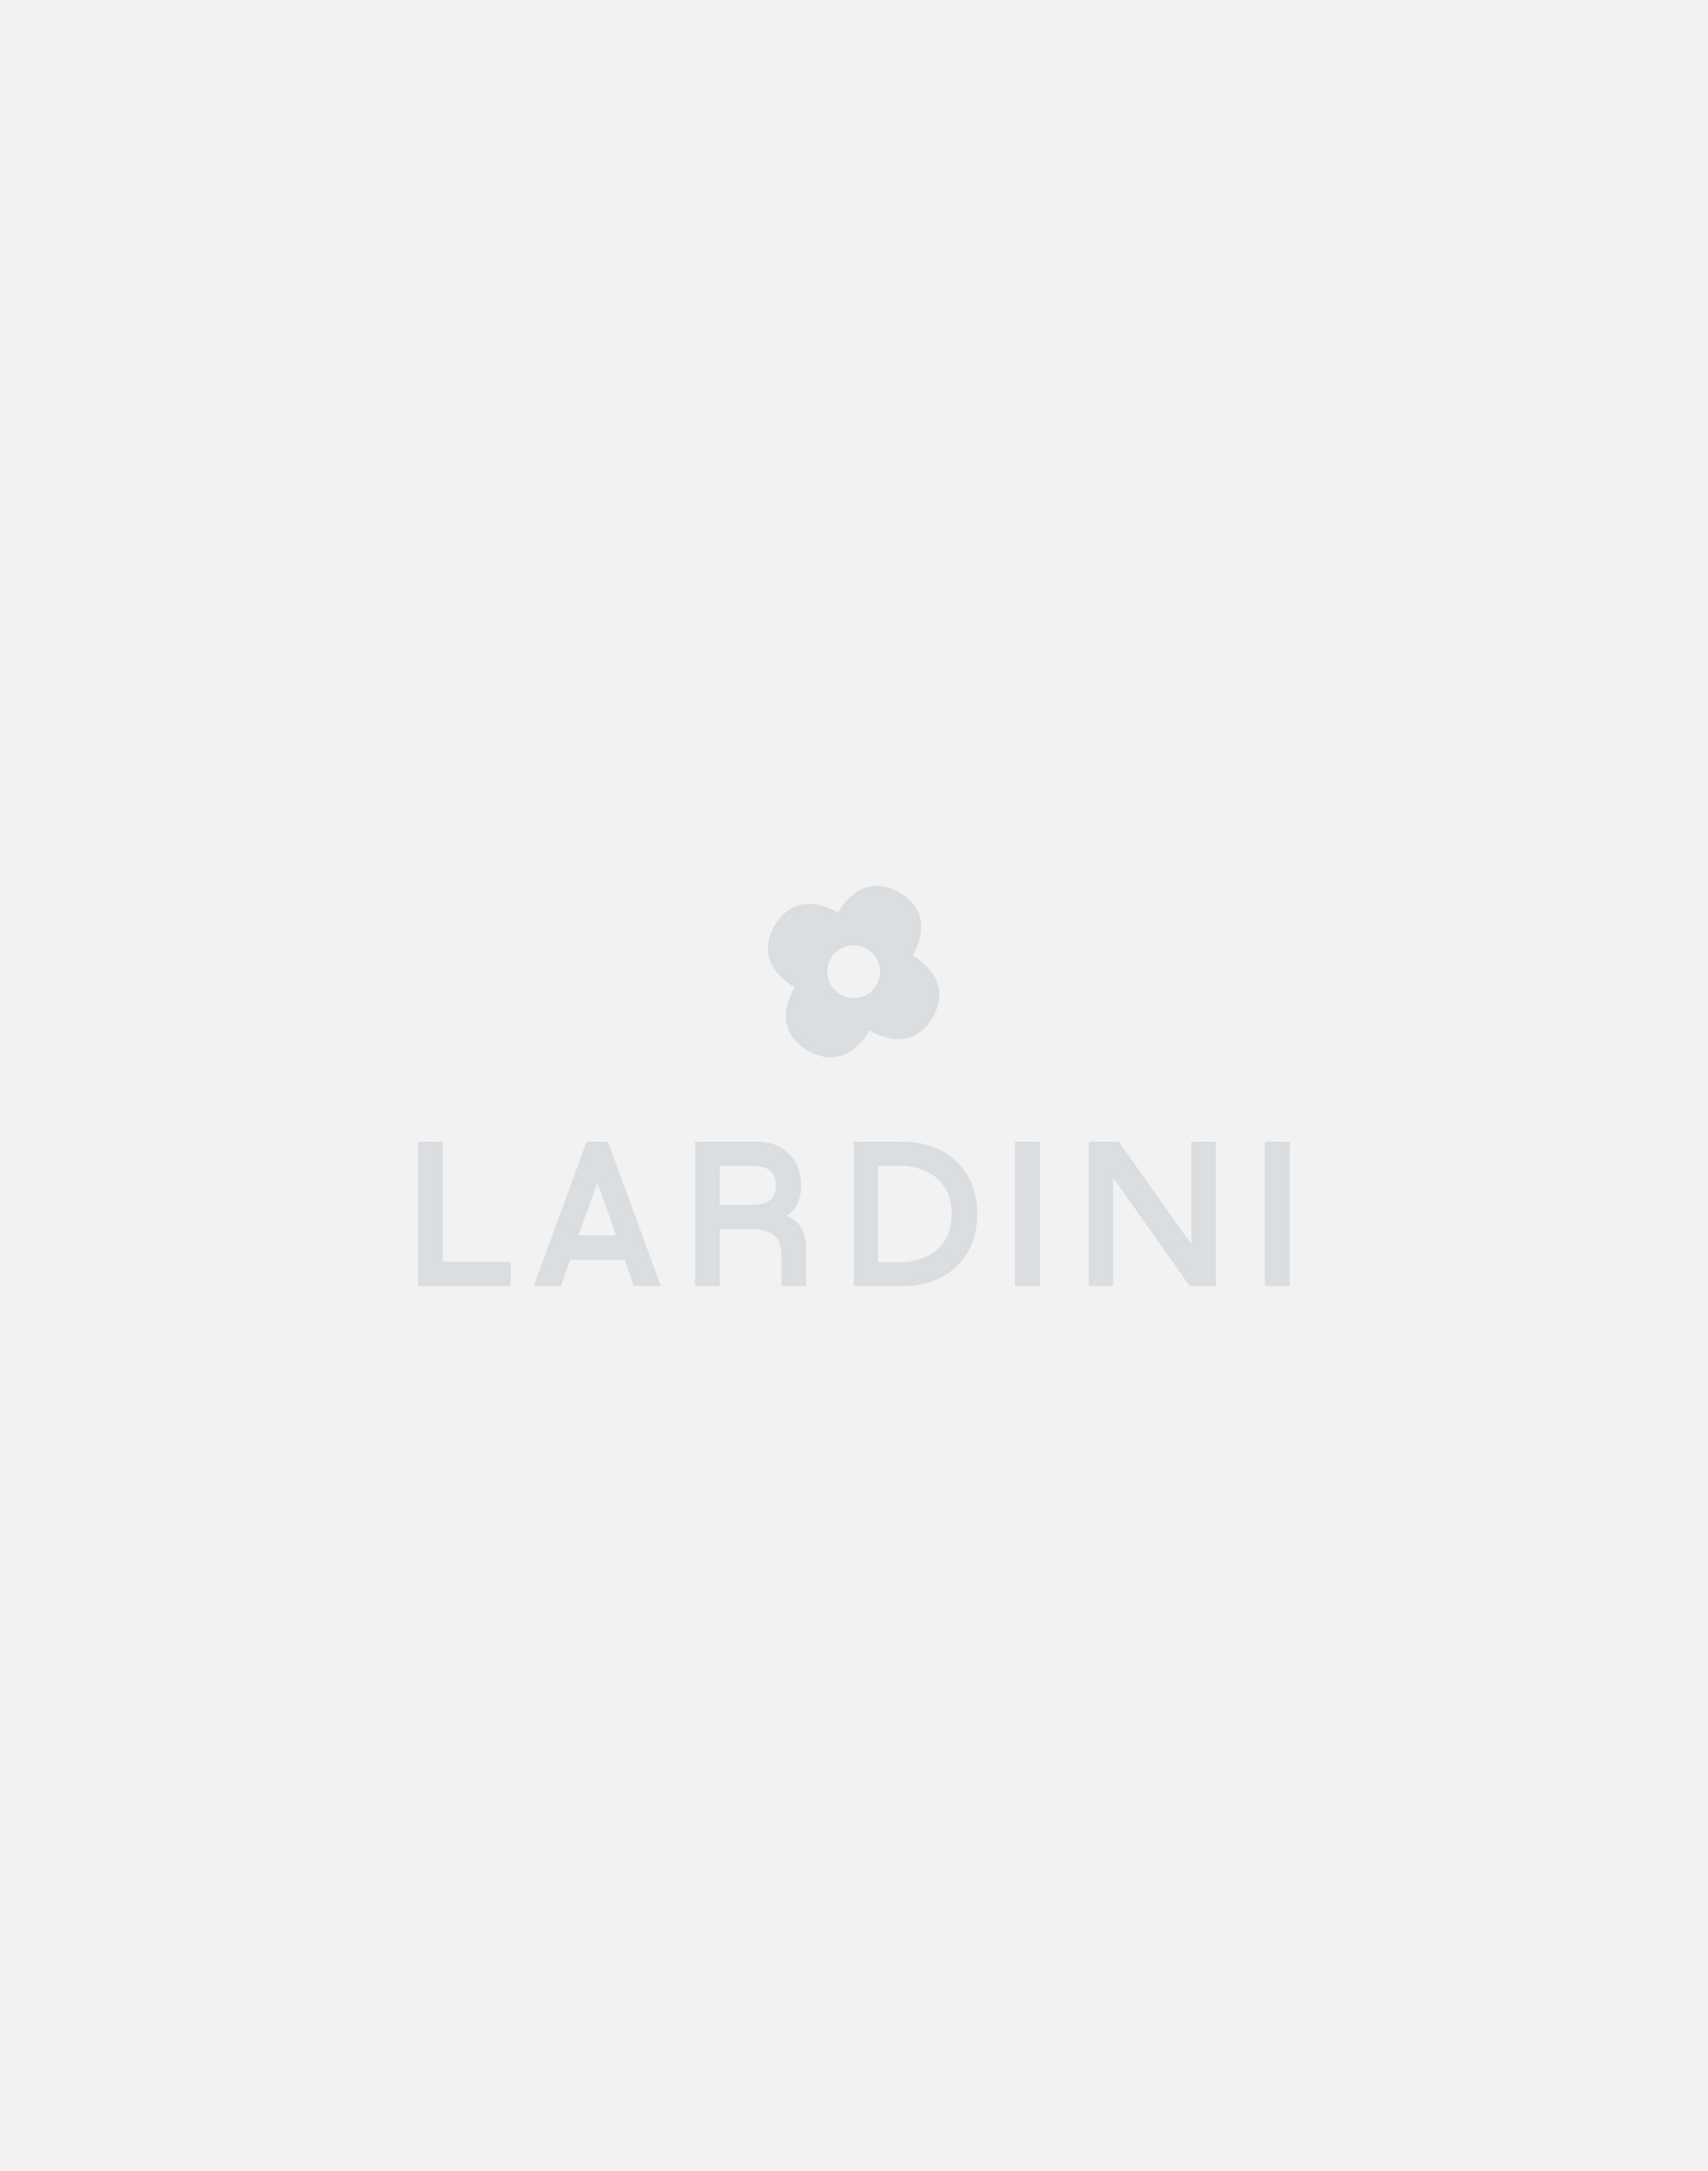 Two-tone white and blue knit tie